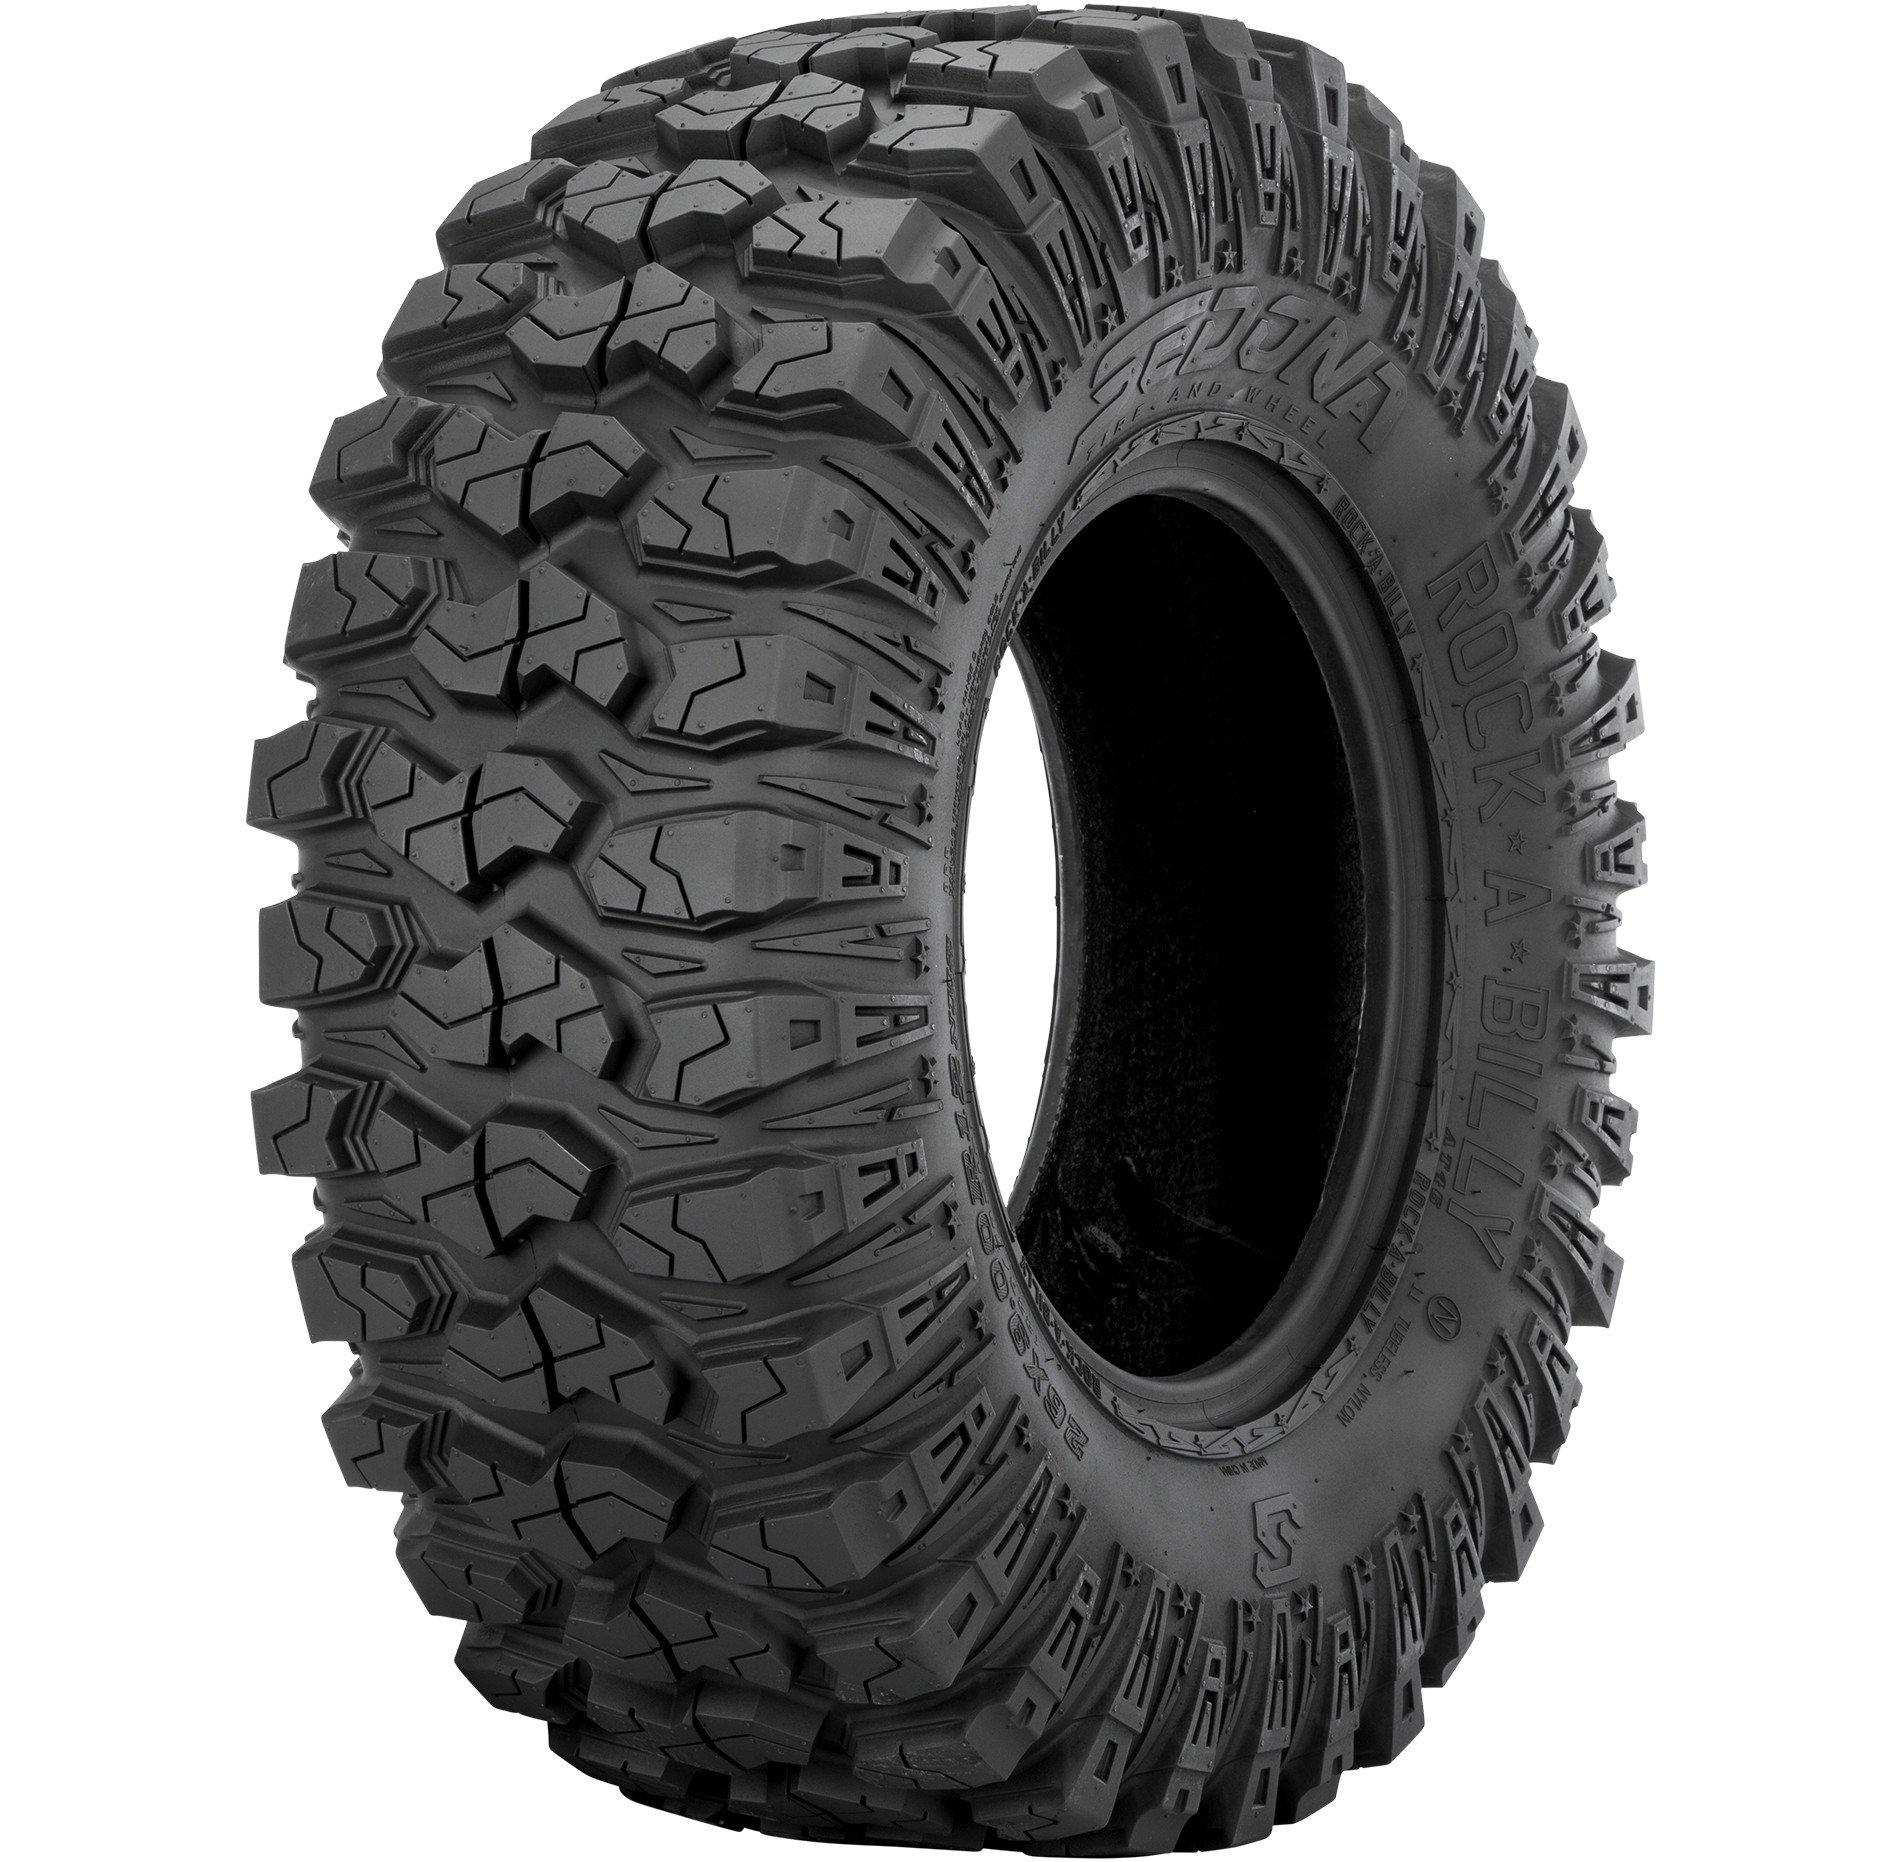 Sedona Rock-A-Billy Radial Tire-Tires-Sedona-30x10R14-Black Market UTV